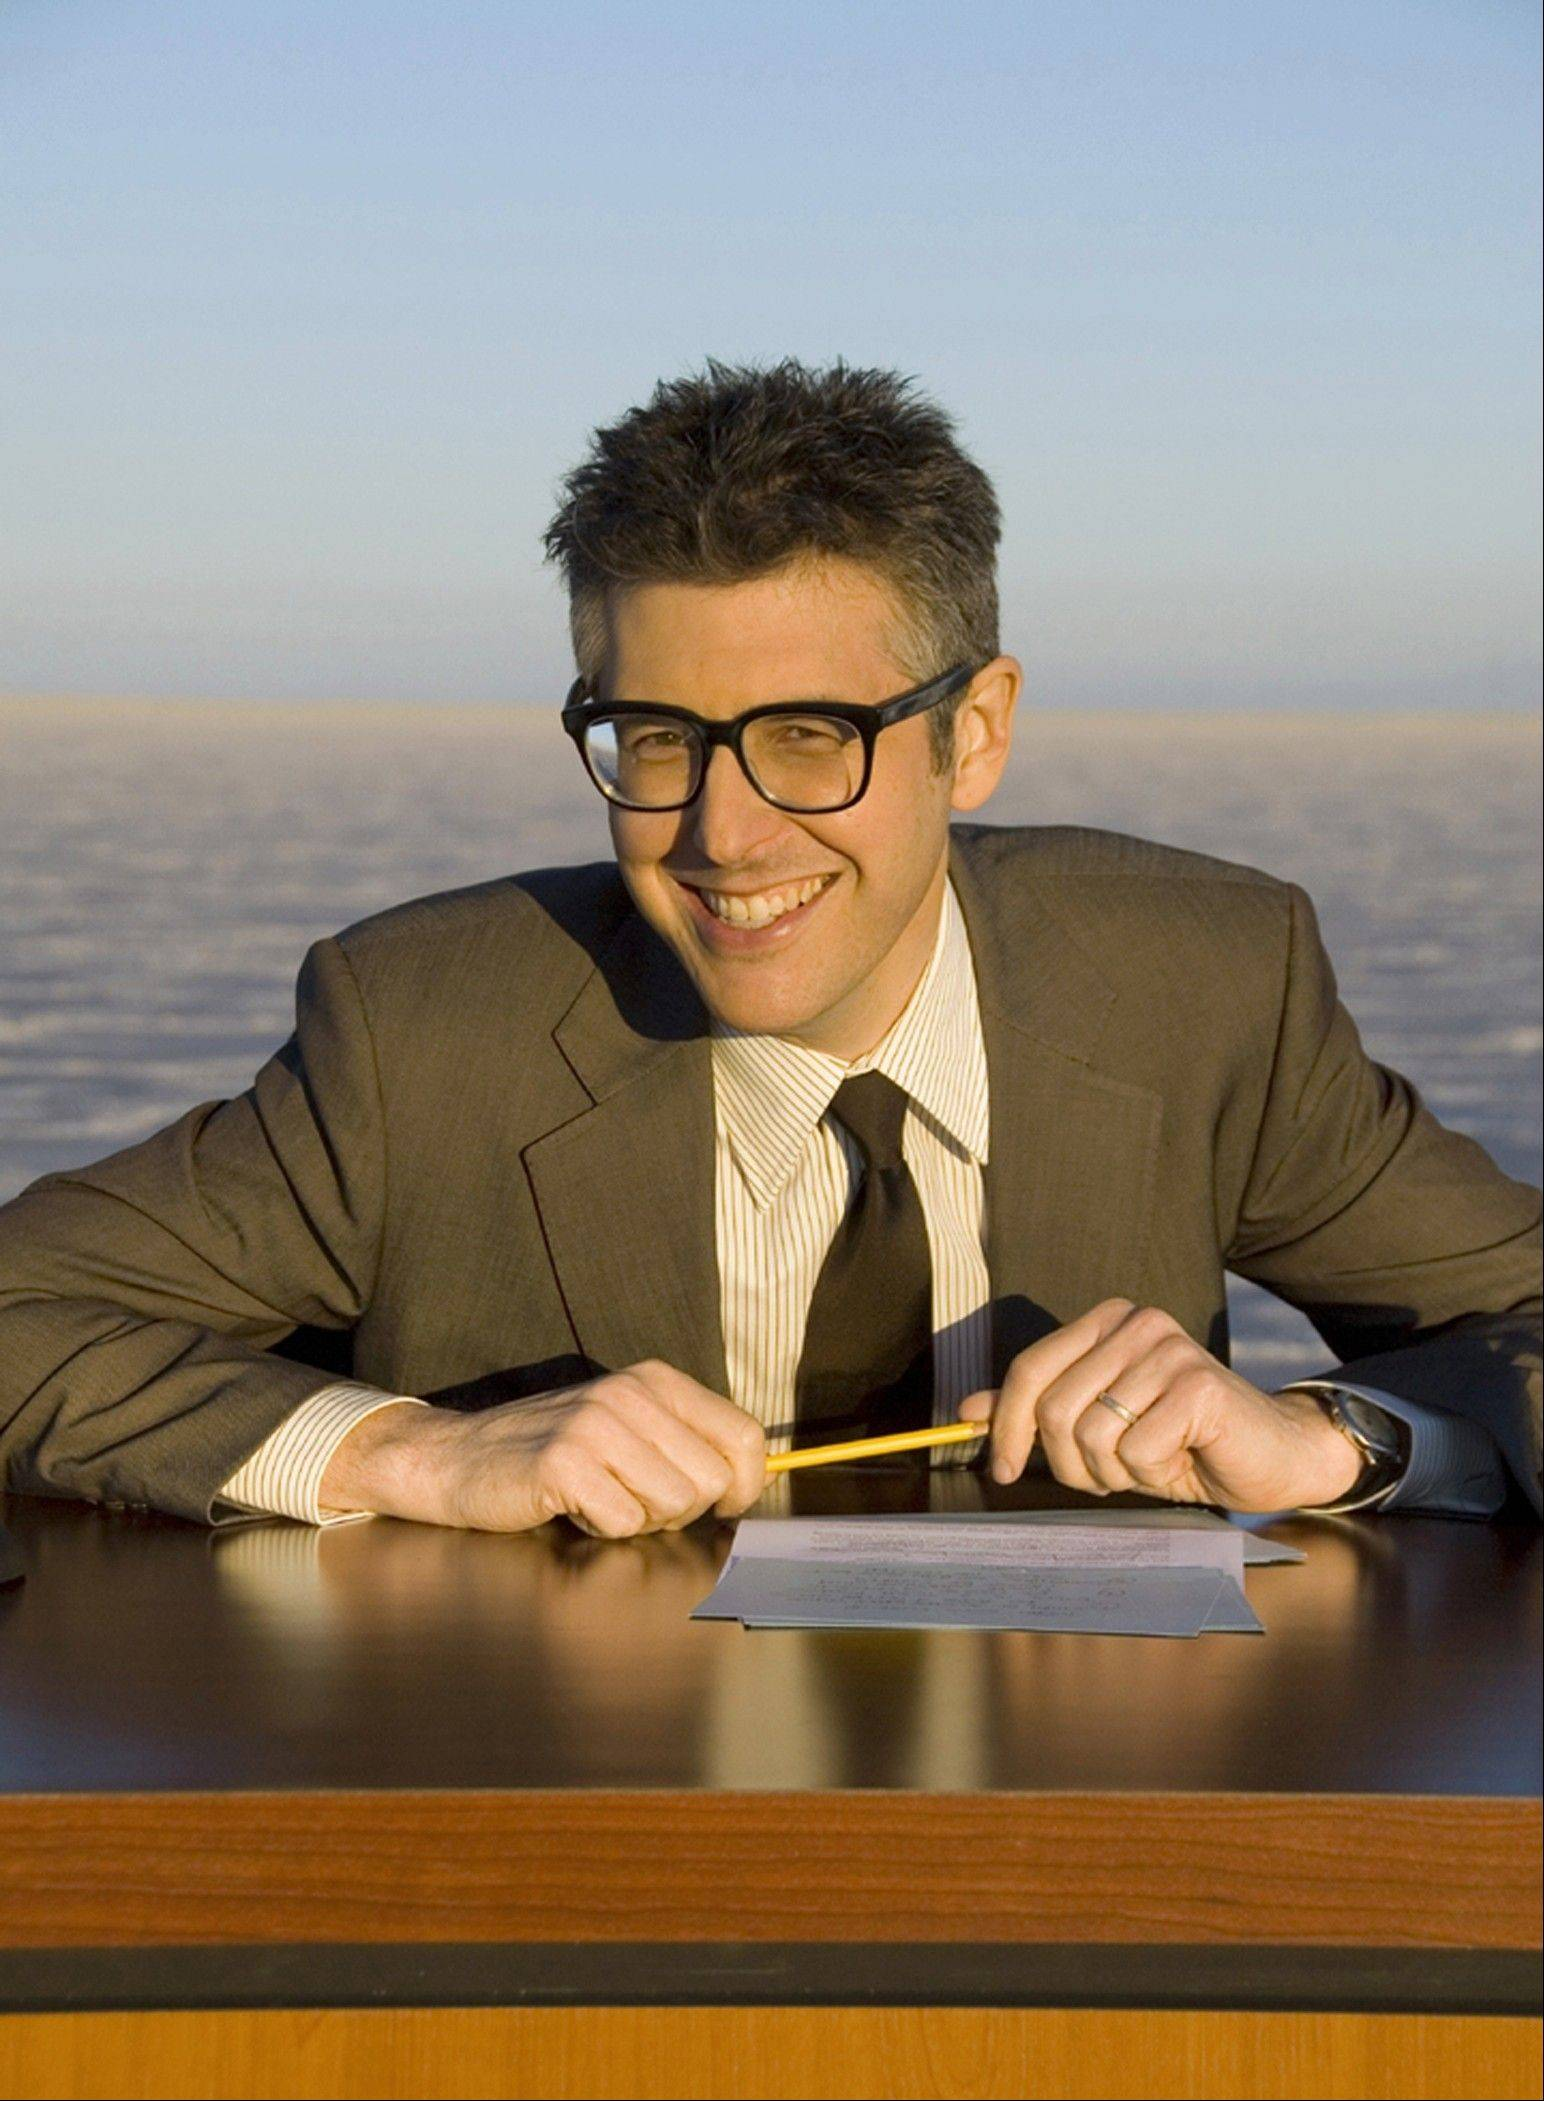 """Reinventing Radio: An Evening With Ira Glass"" features the famed host of ""This American Life"" at the Arcada Theatre in St. Charles on Saturday, April 14."